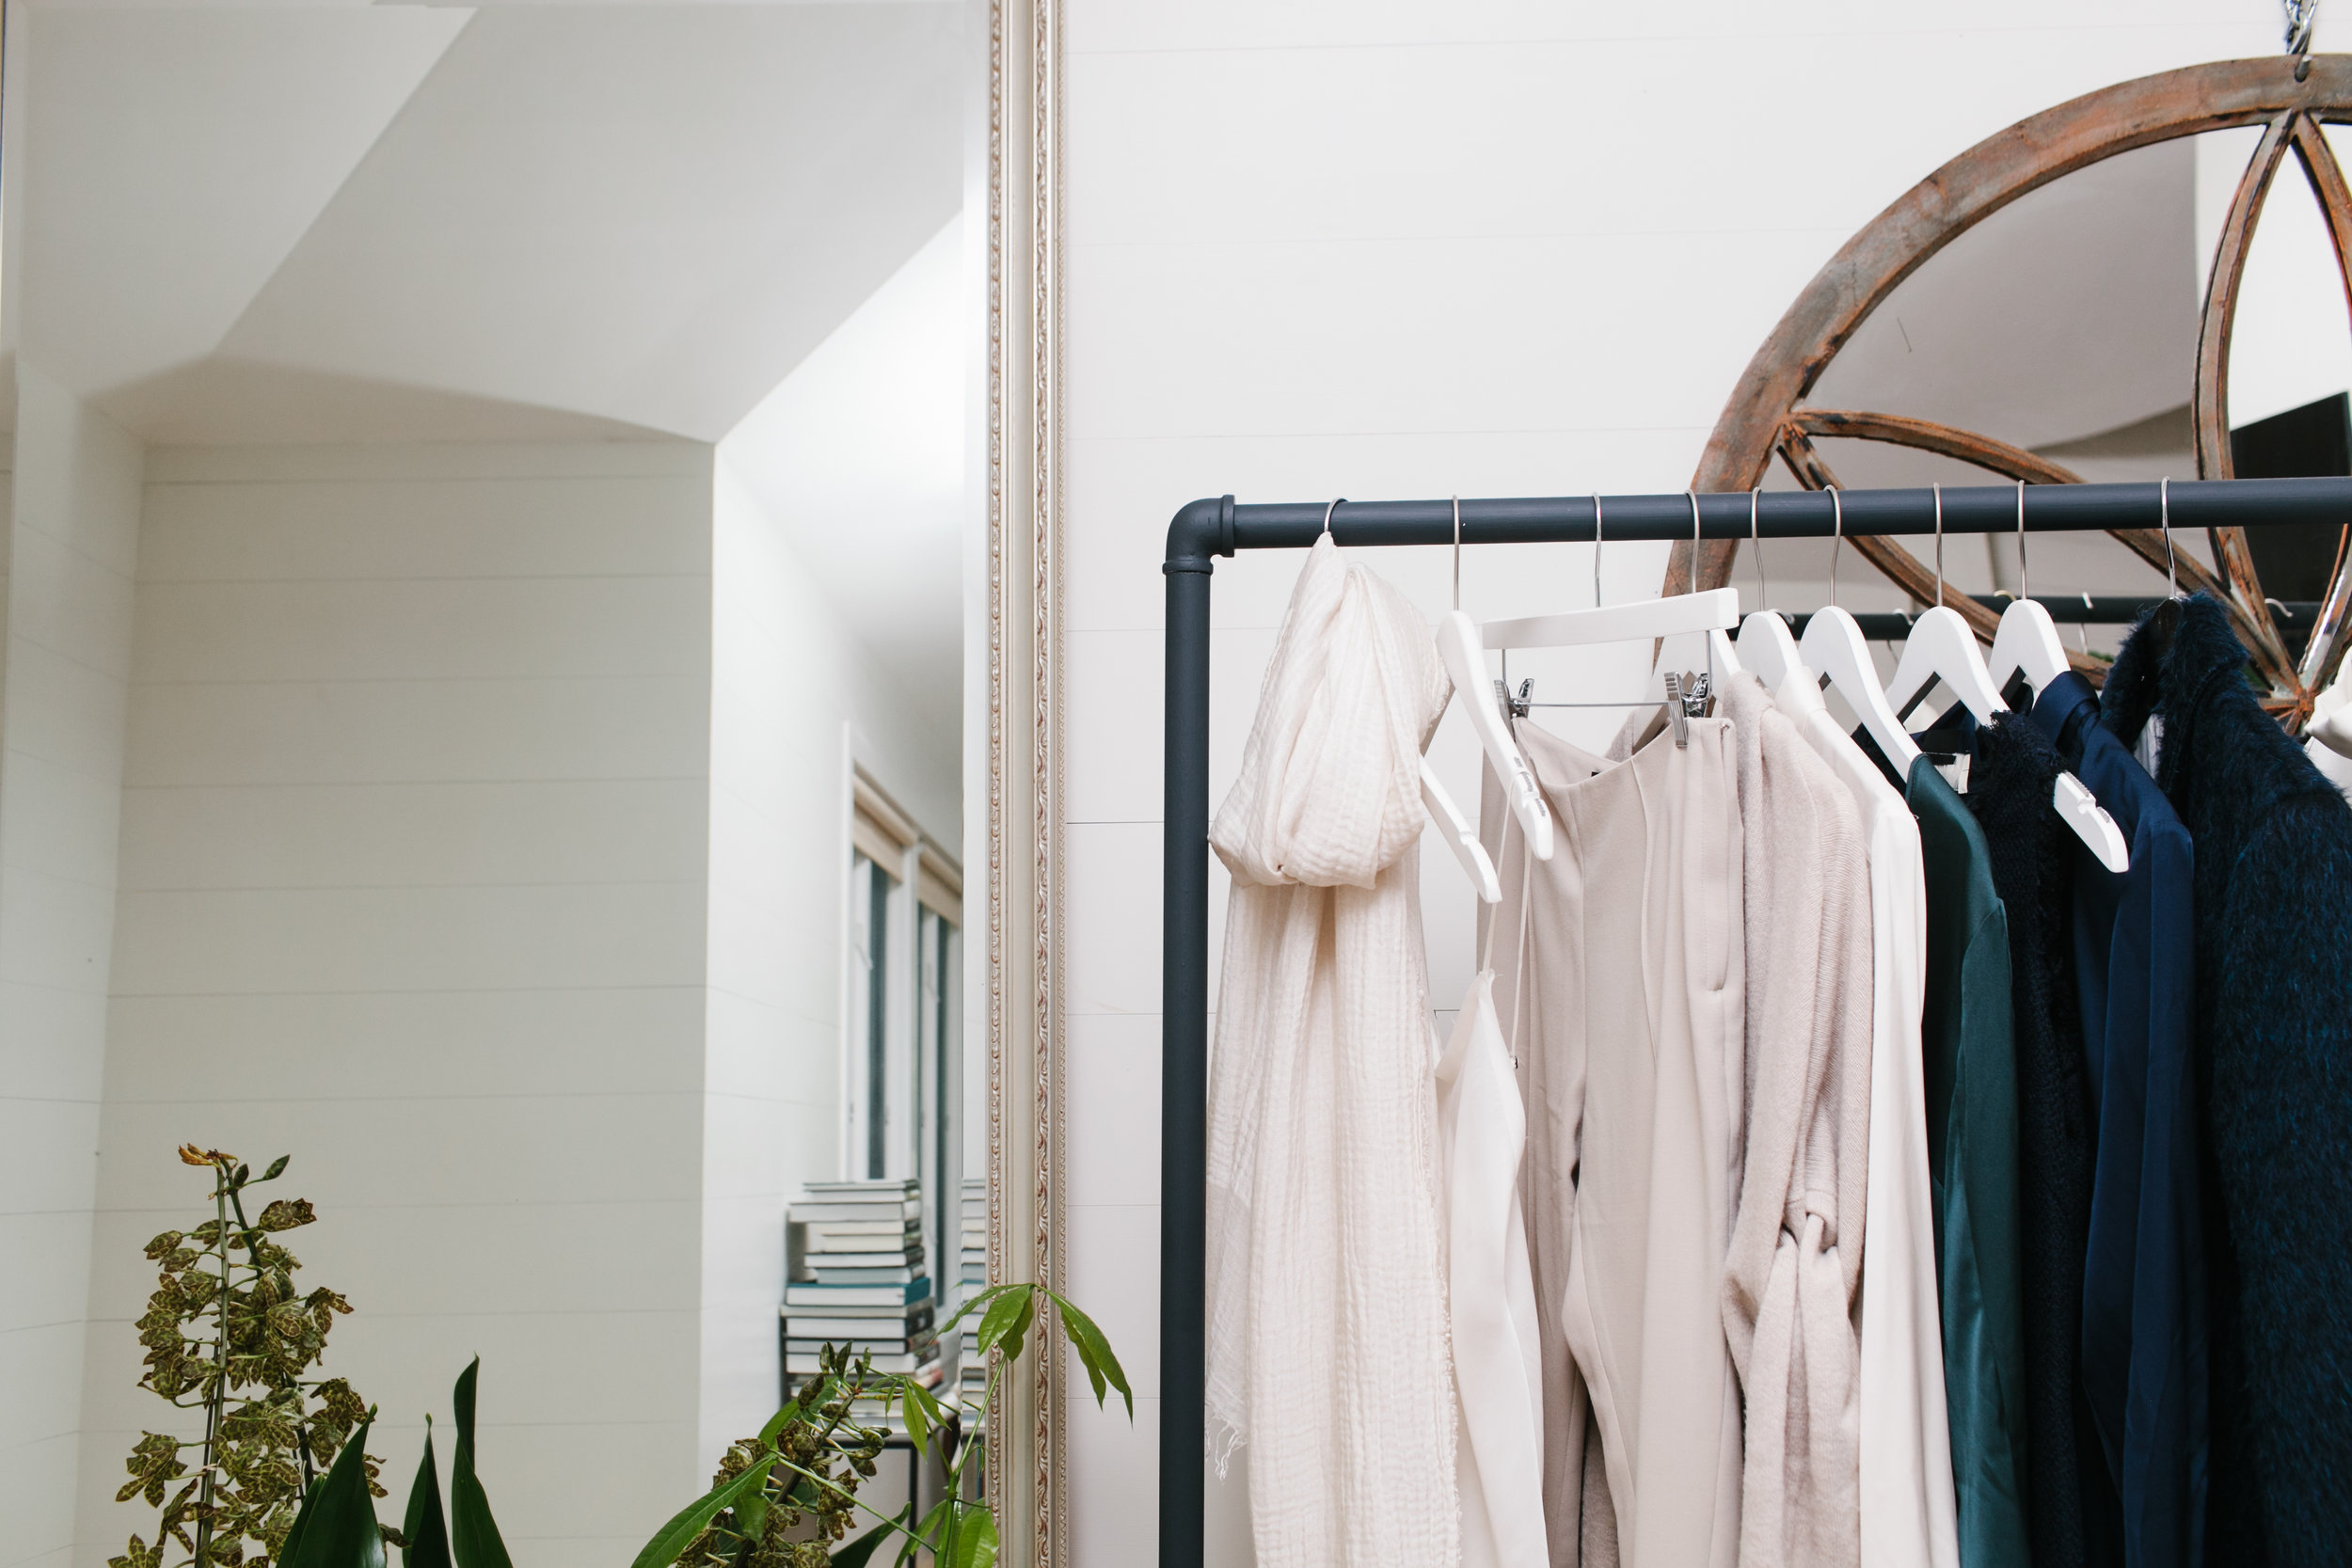 I am in the fashion business, and run my own business from home sometimes, which means that clothing racks and rails are part of my stock and trade. I decided to abandon the bright reflective steel once and for all and use  Railings  to give the racks class, presence, a graphic quality. Perfect.